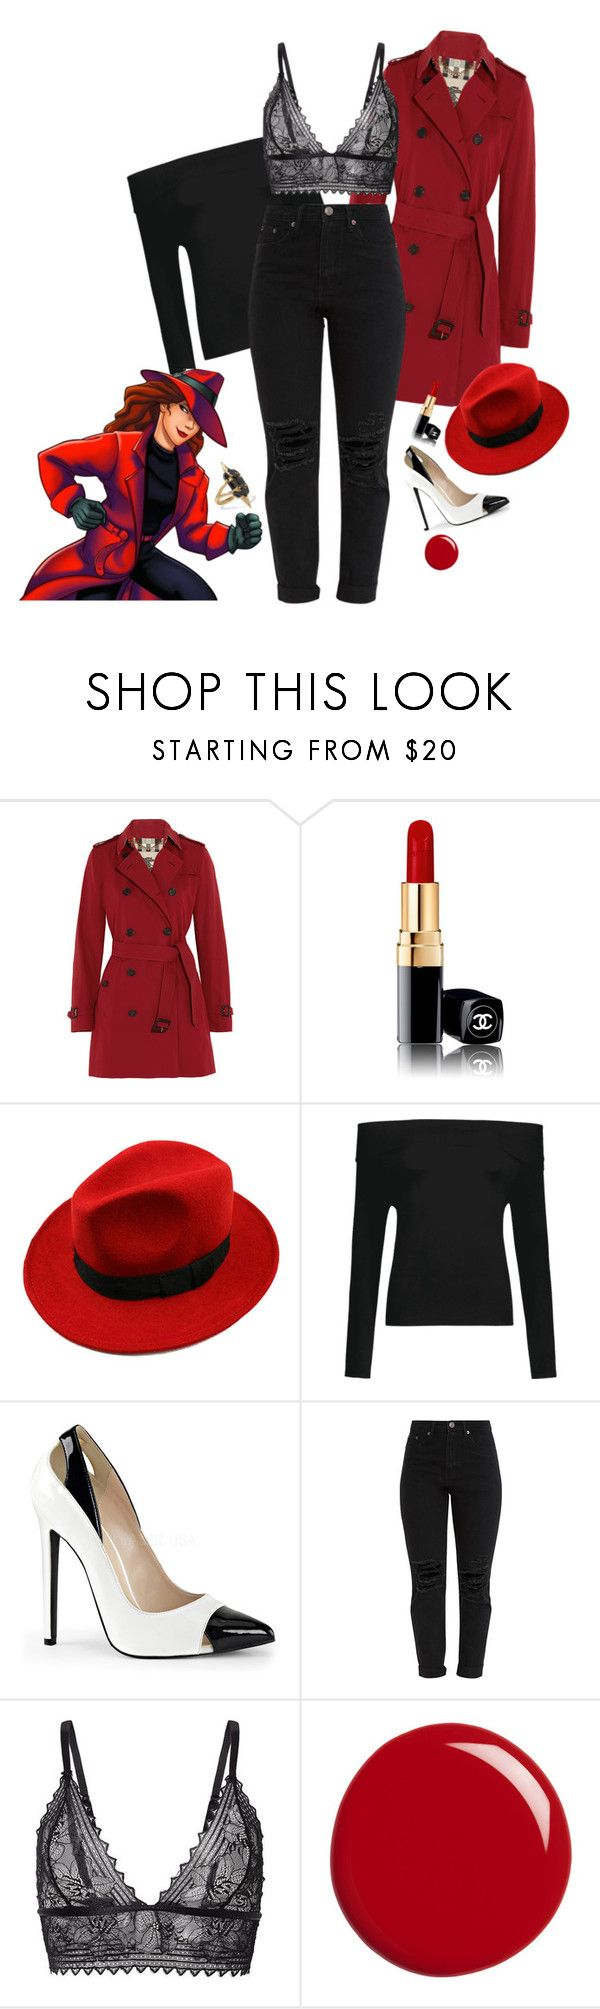 """Carmen San Diego 1.0 {Carmen San Diego}"" by sarah-natalie ❤ liked on Polyvore featuring Burberry, Chanel, WithChic, Gucci and Noir Jewelry"